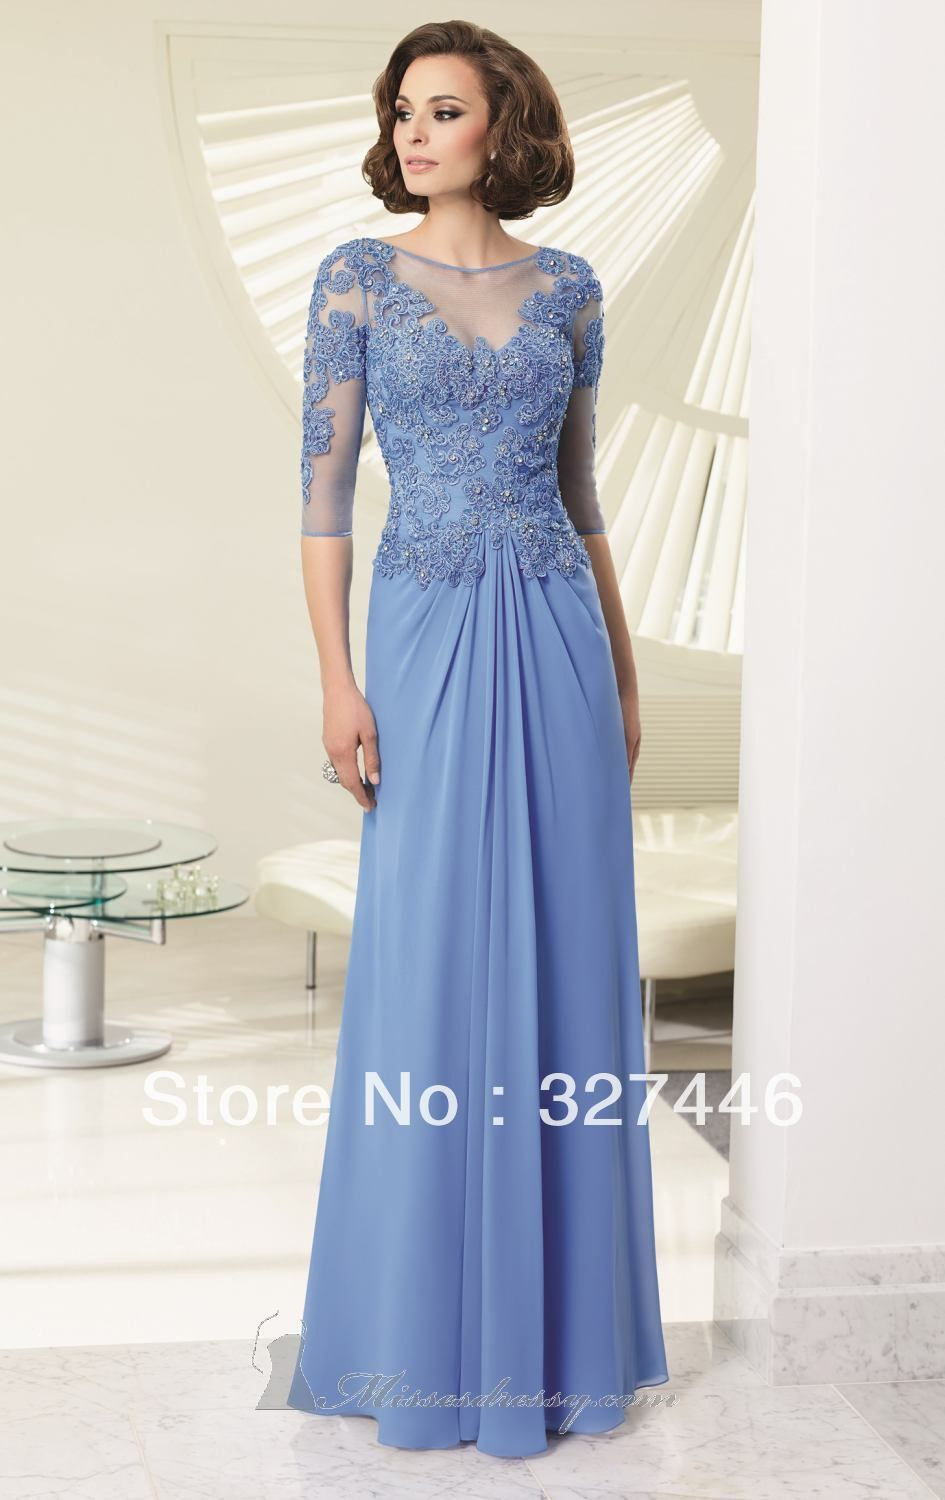 2100c54aa Elegent Dresses for Mother of the Bride Groom Gowns 2014 Chiffon Lace  Appliqued with Jacket Half Sleeves Special Occasion Formal US  90.60